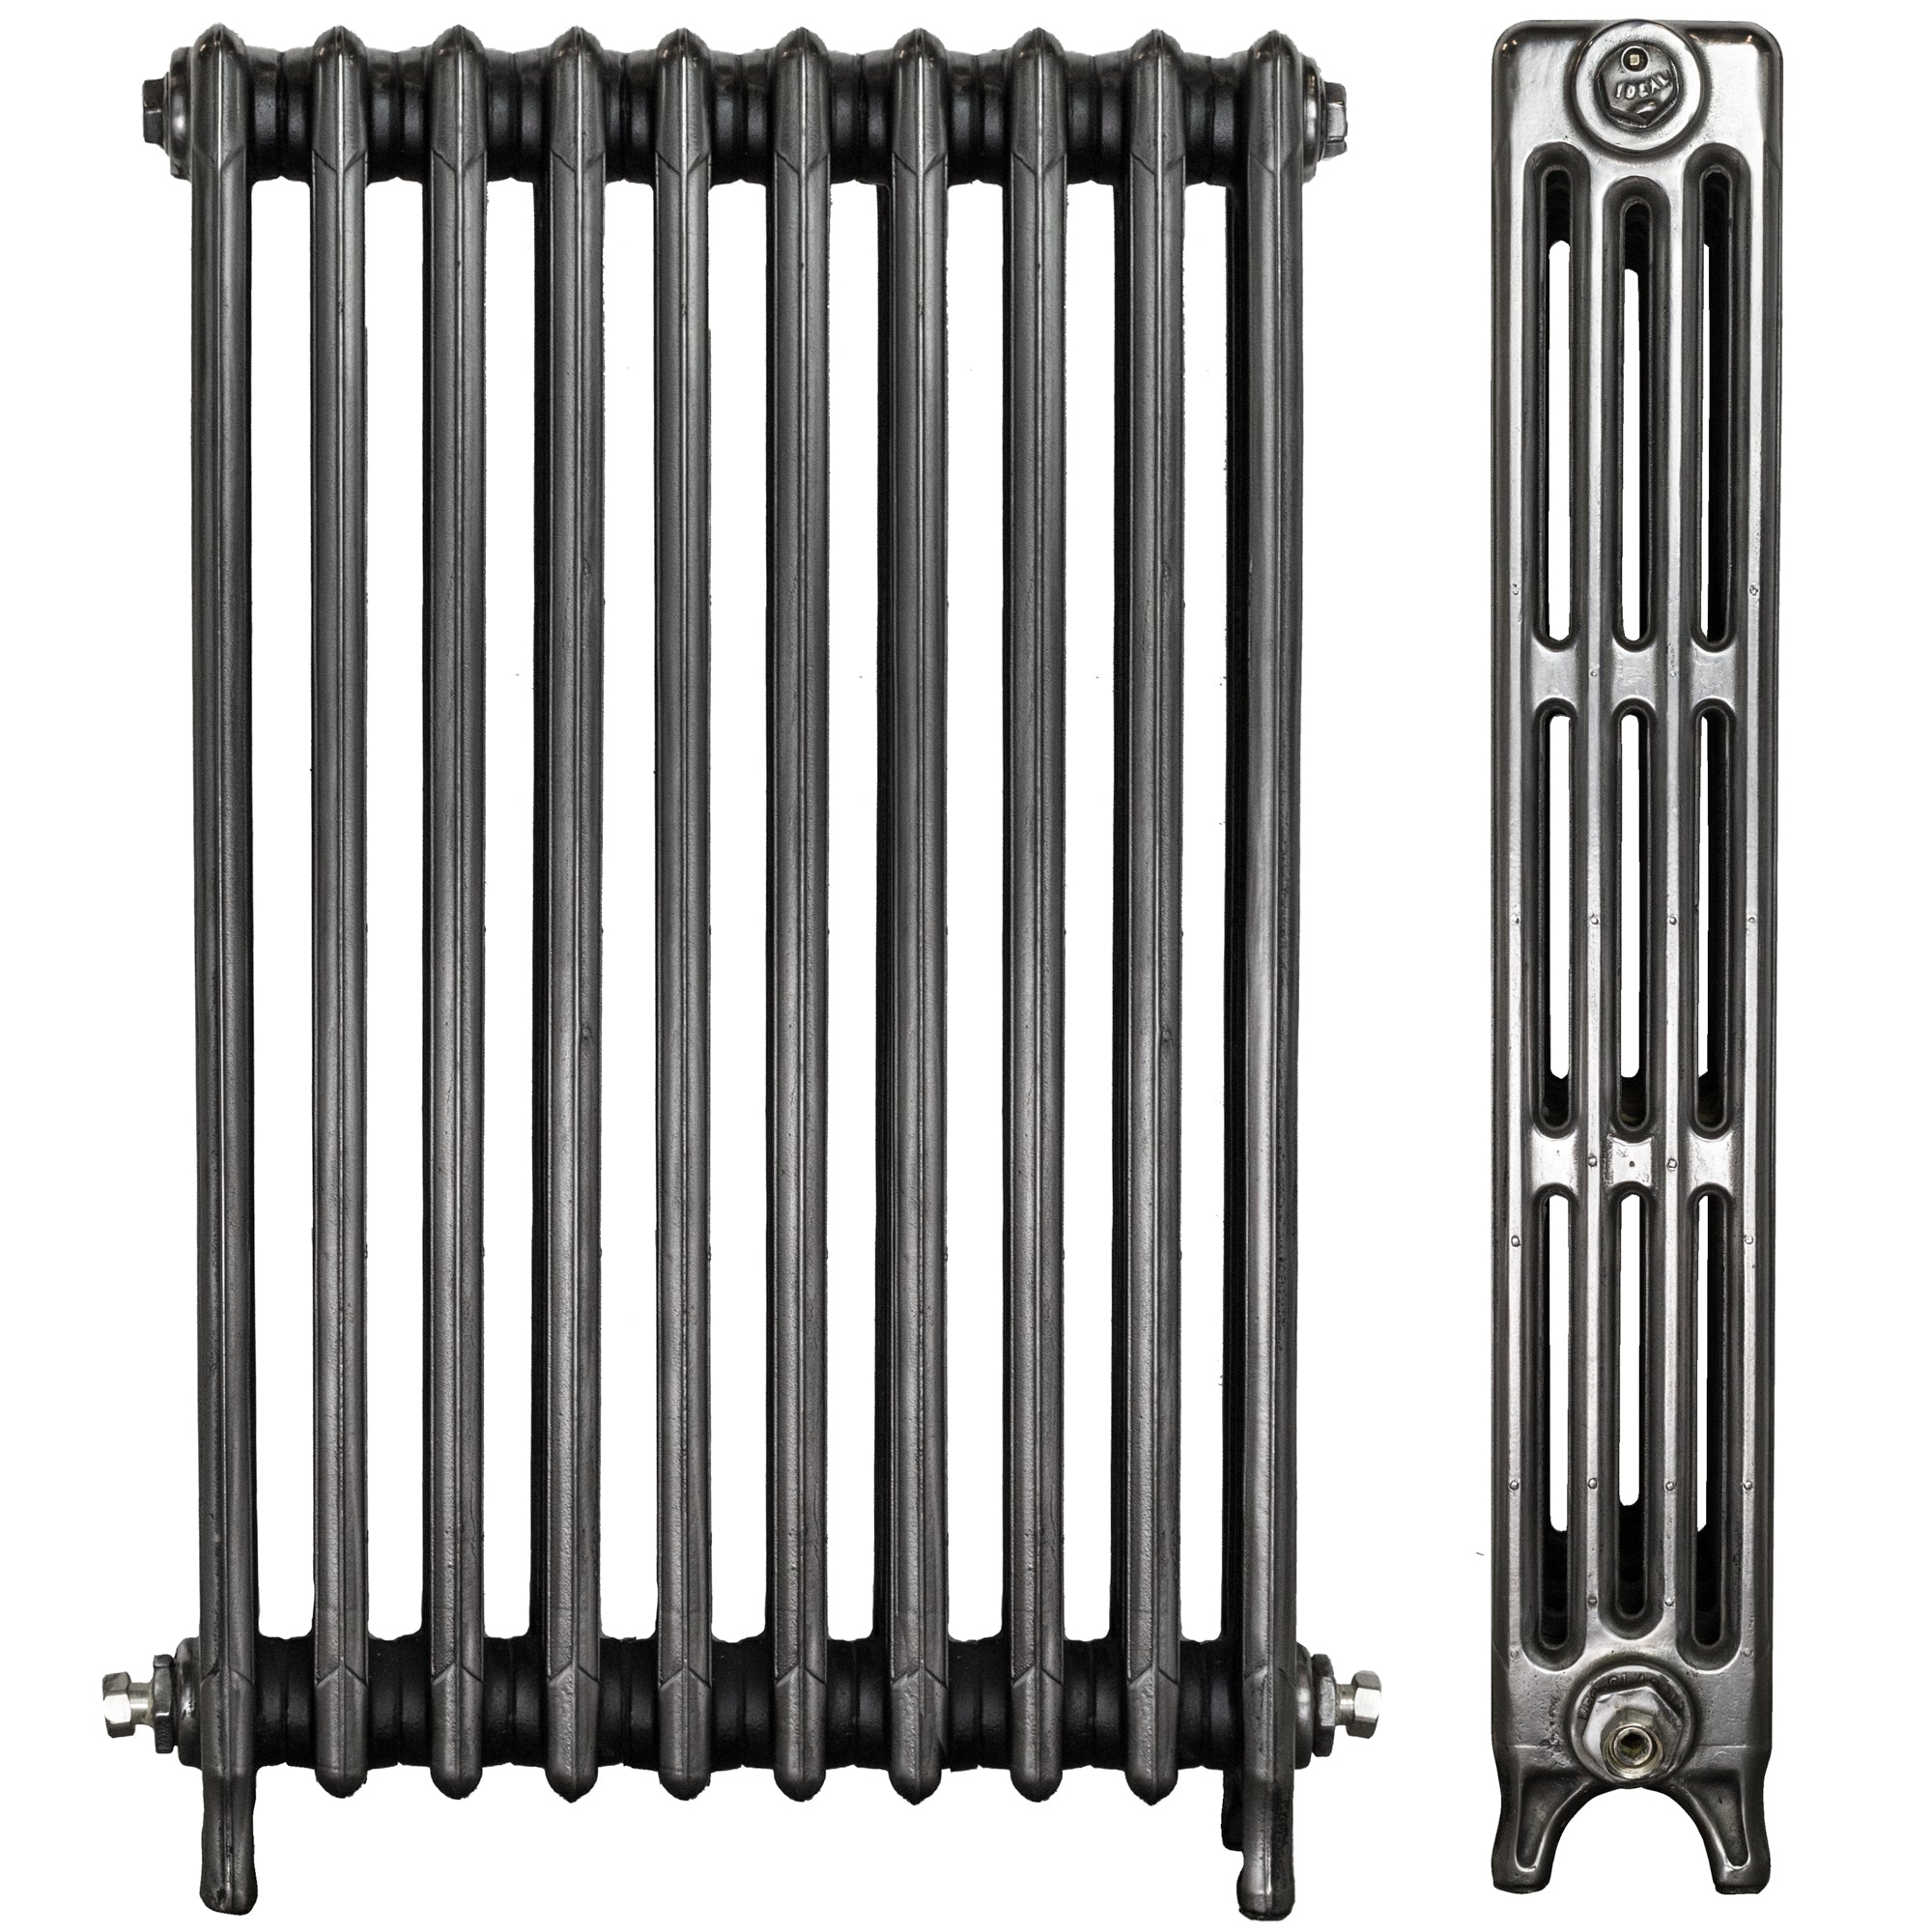 Fully Restored Ideal Cast Iron Radiator 4 Column 10 Section (92cm tall)